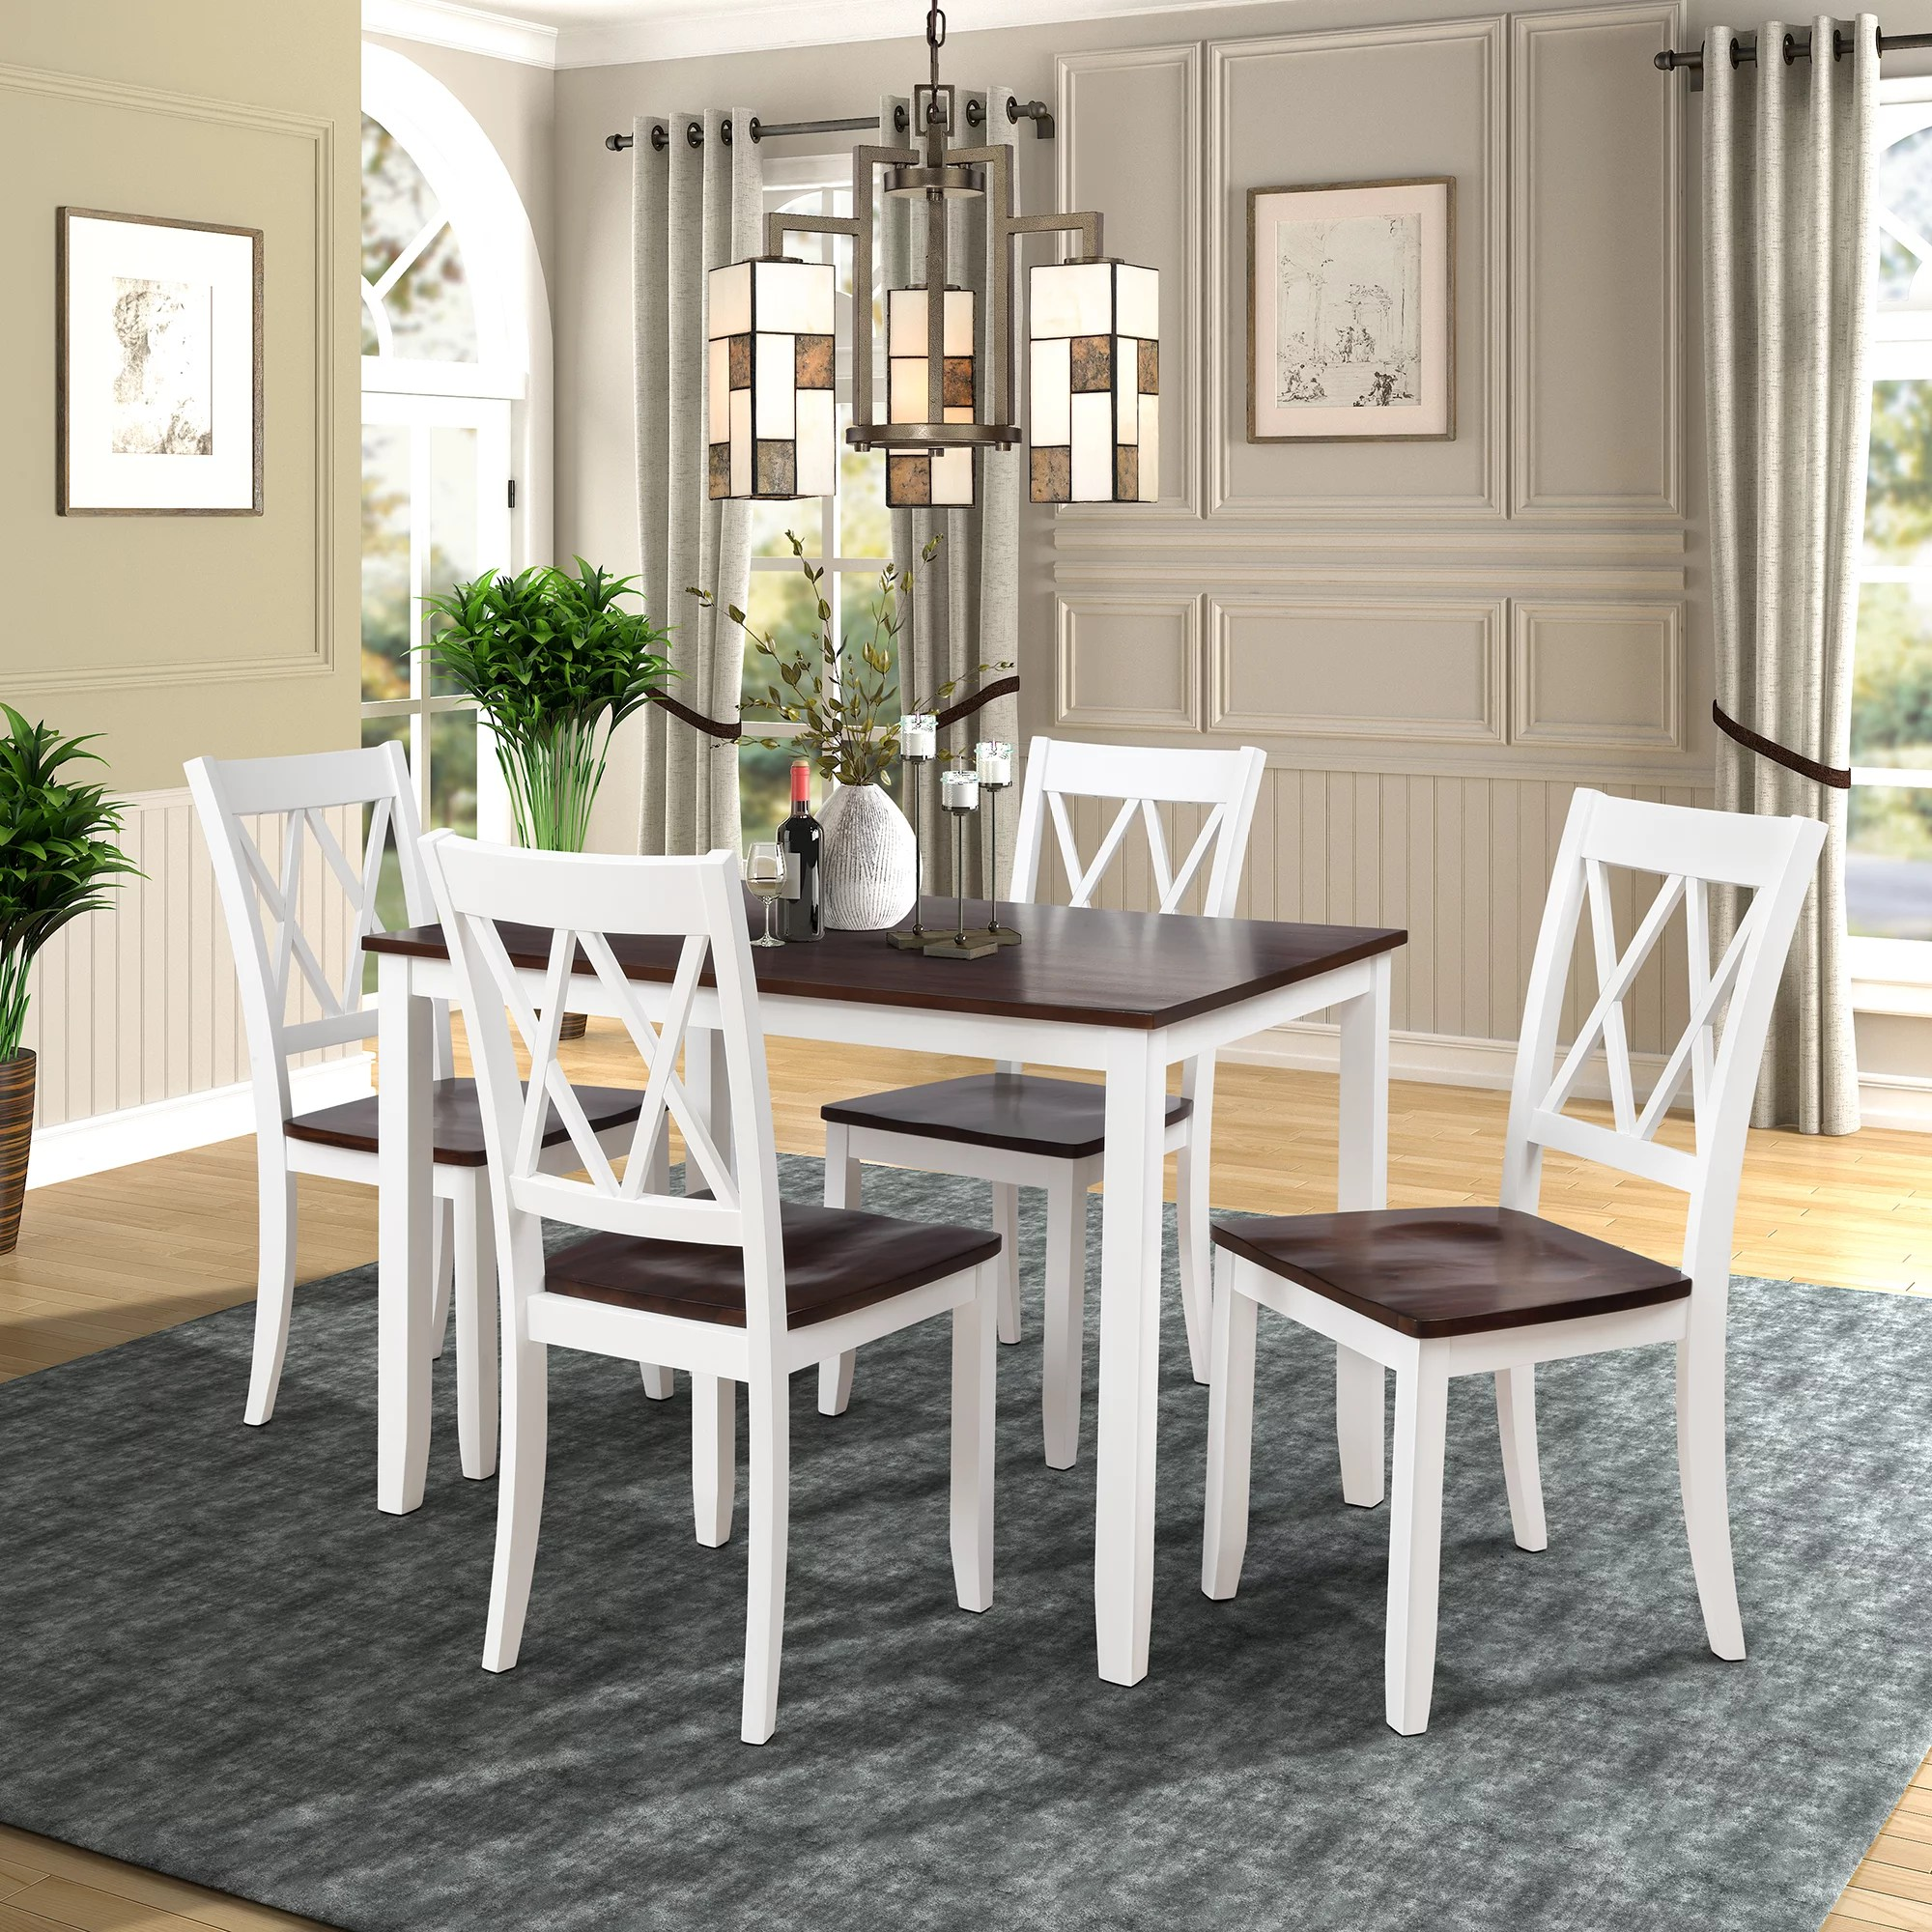 https www walmart com ip goolrc 5 piece dining table set home kitchen table and chairs wood dining set white cherry 704816591